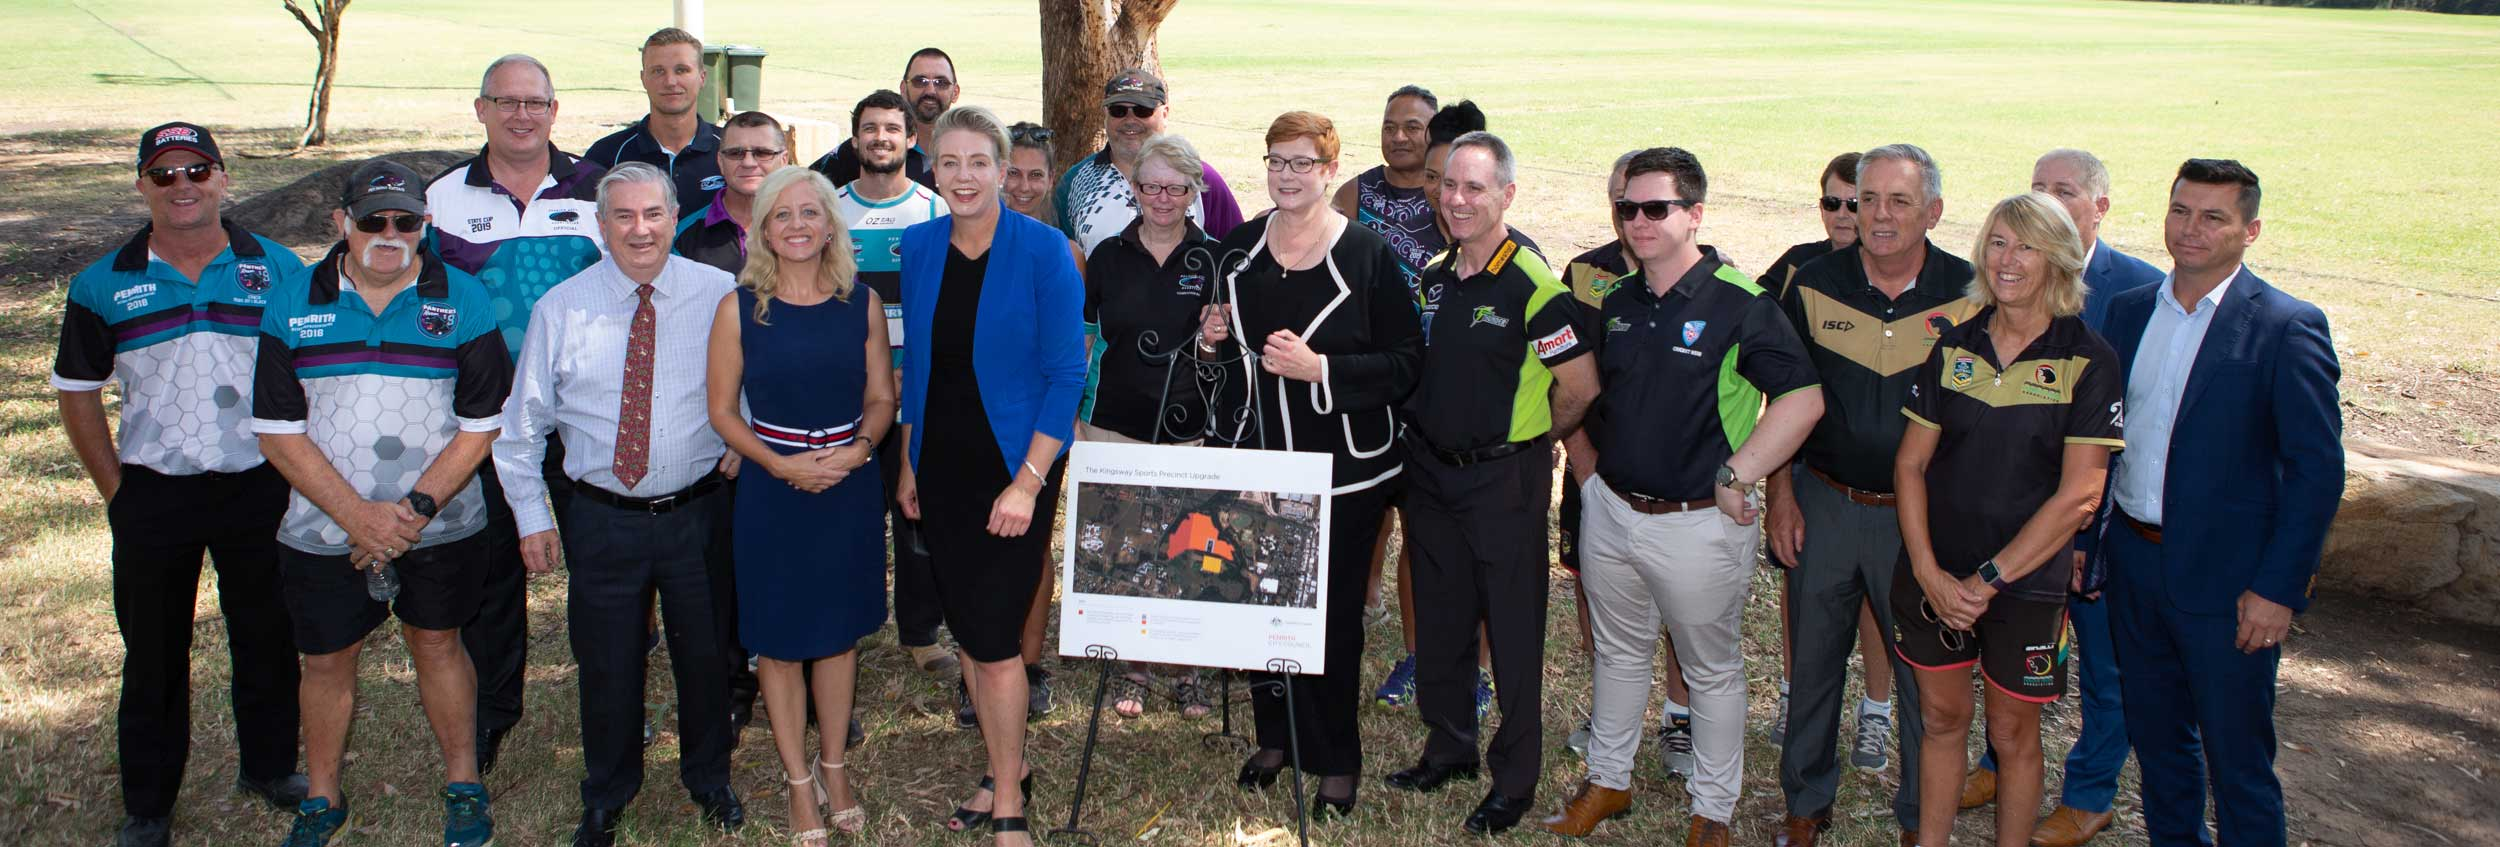 Penrith Mayor Ross Fowler OAM joined Federal Ministers, Senator the Hon. Bridget McKenzie and Senator the Hon. Marise Payne with local sporting groups (Cricket, Oztag and Touch Football) at The Kingsway for the announcement of upgrades to the lights and playing surface.